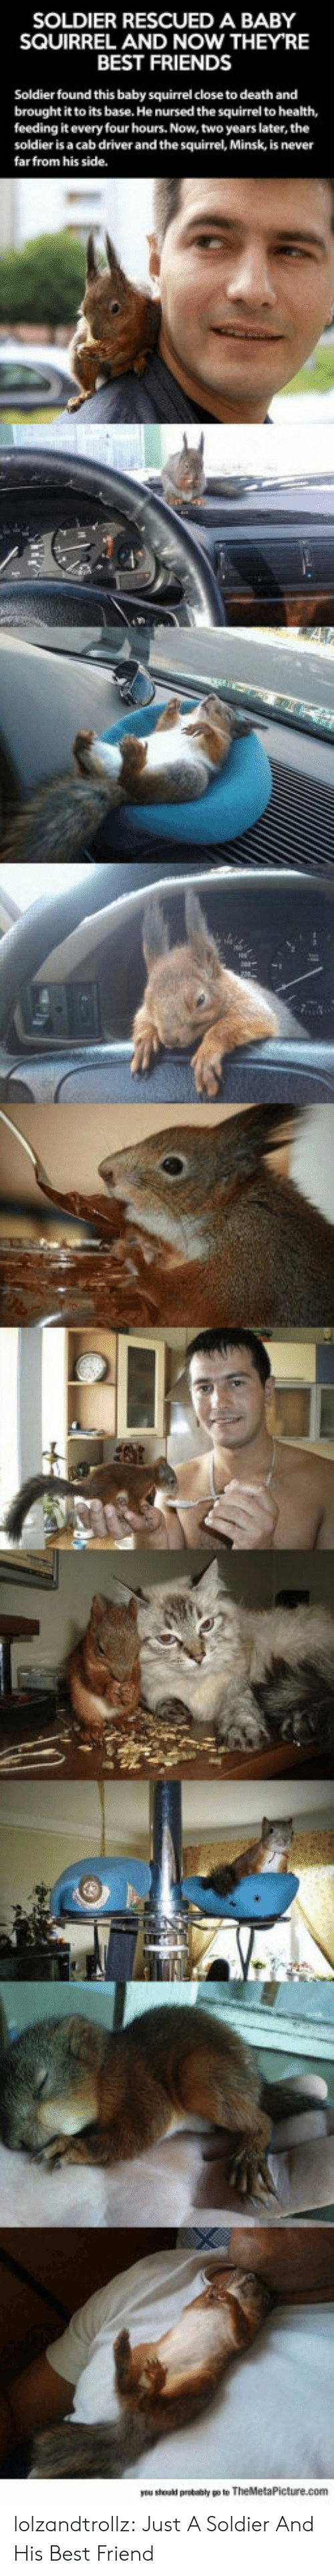 cab: SOLDIER RESCUED A BABY  SQUIRREL AND NOW THEY'RE  BEST FRIENDS  Soldier found this baby squirrel close to death and  brought it to its base. He nursed the squirrel to health,  feeding it every four hours. Now, two years later, the  soldier is a cab driver and the squirrel, Minsk, is never  farfrom his side. lolzandtrollz:  Just A Soldier And His Best Friend